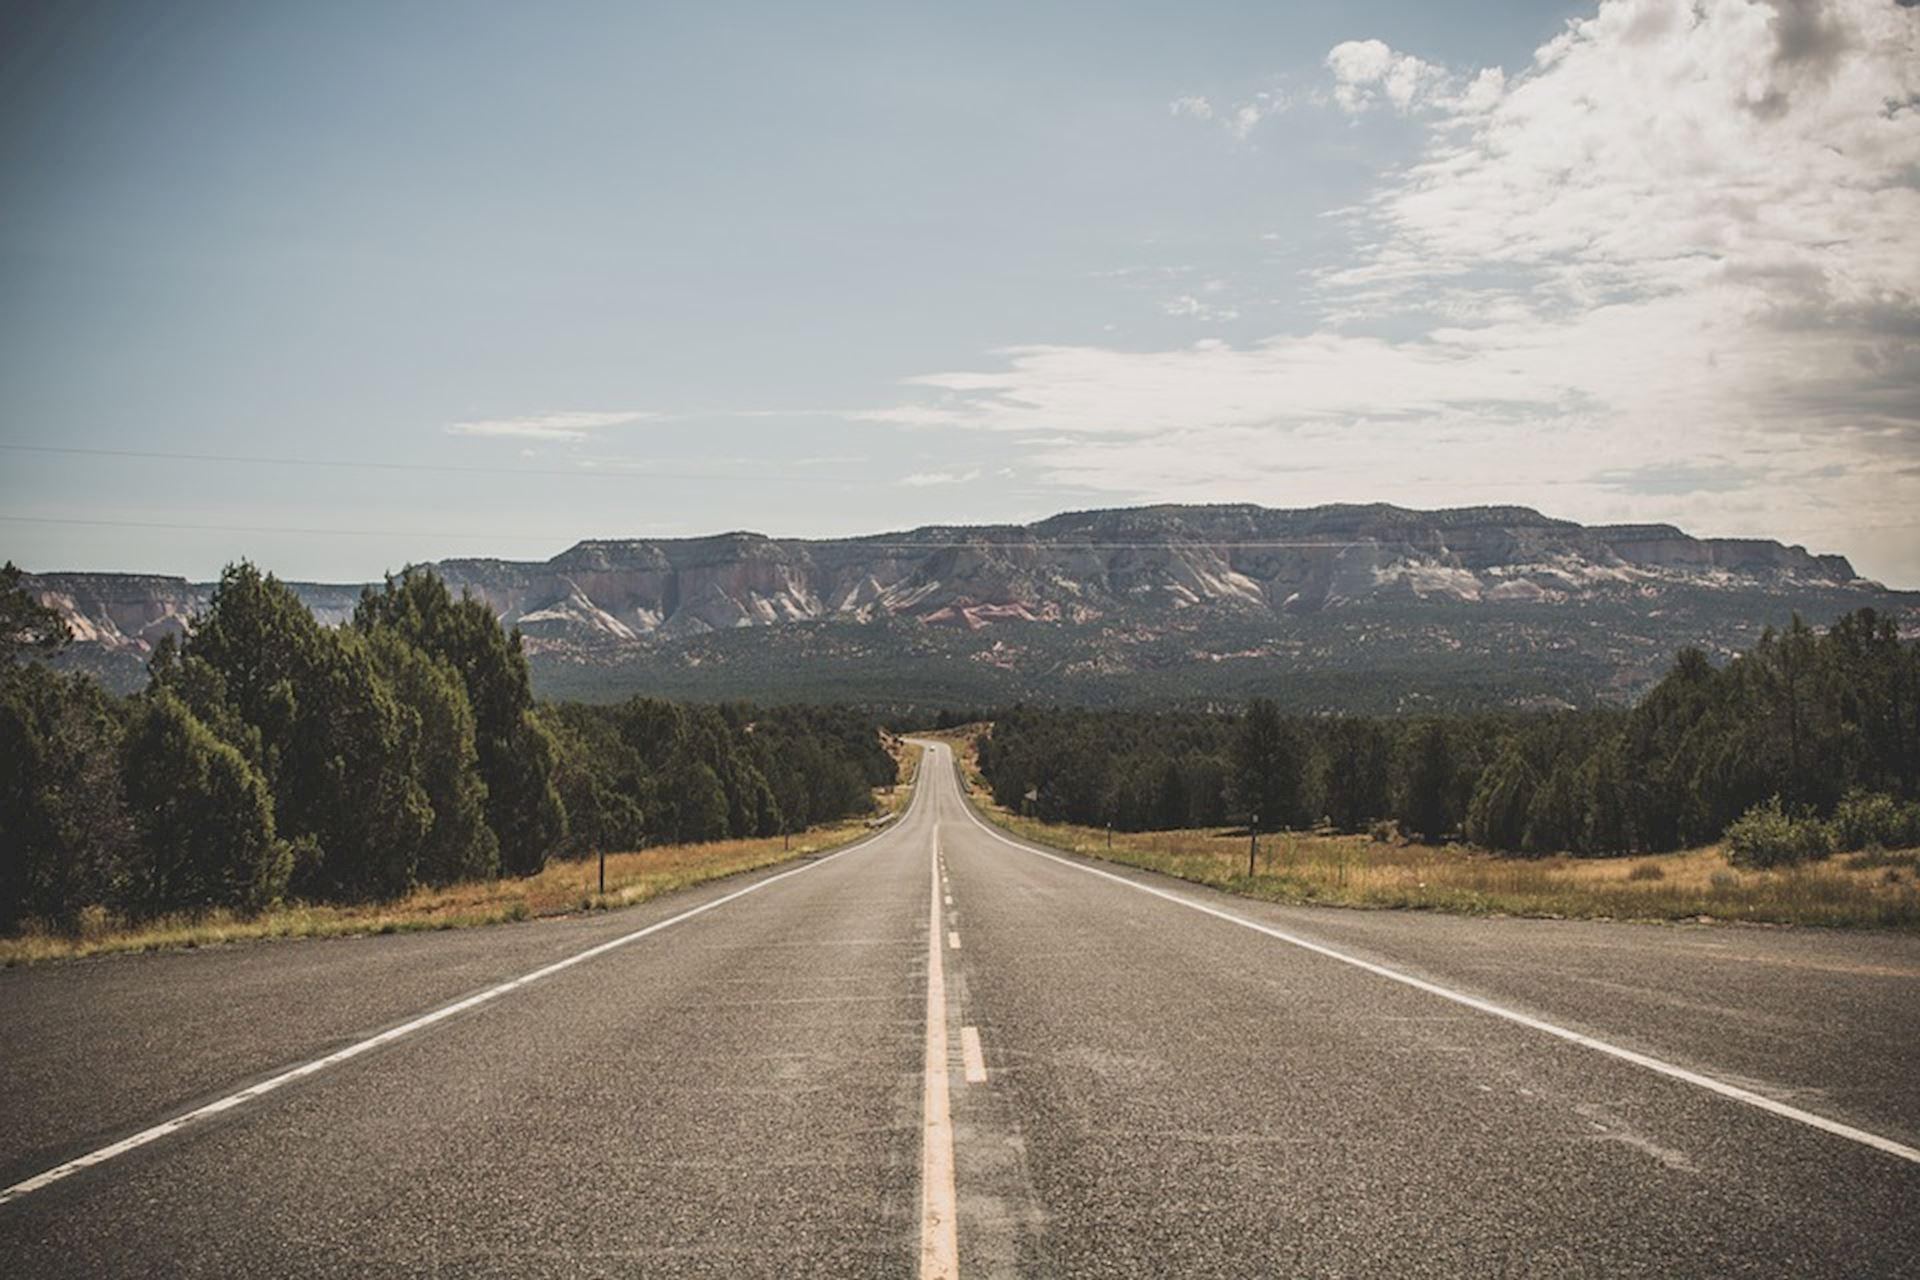 Deciding To Be Exceptional and Go The Extra Mile